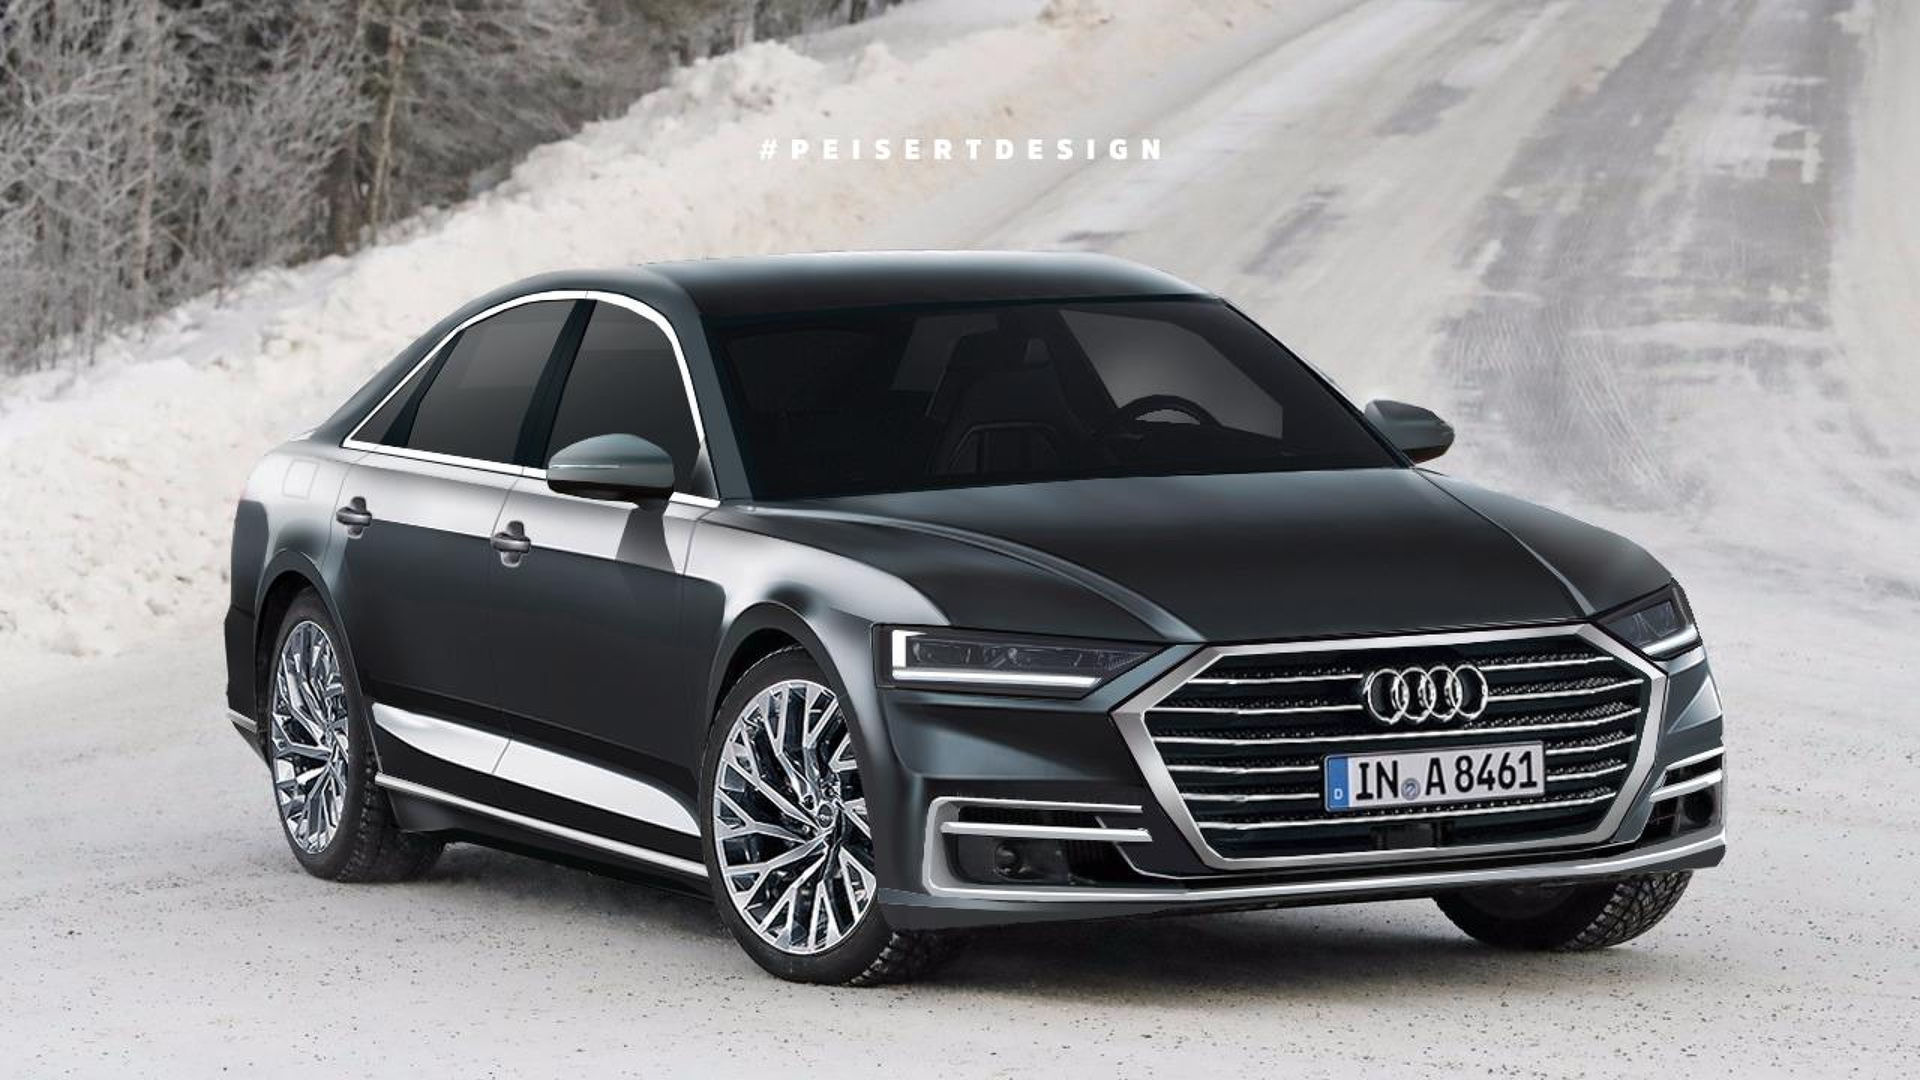 Audi A8l 2018 >> 2018 Audi A8 Rendering Previews A Sharp-Looking Luxury Sedan